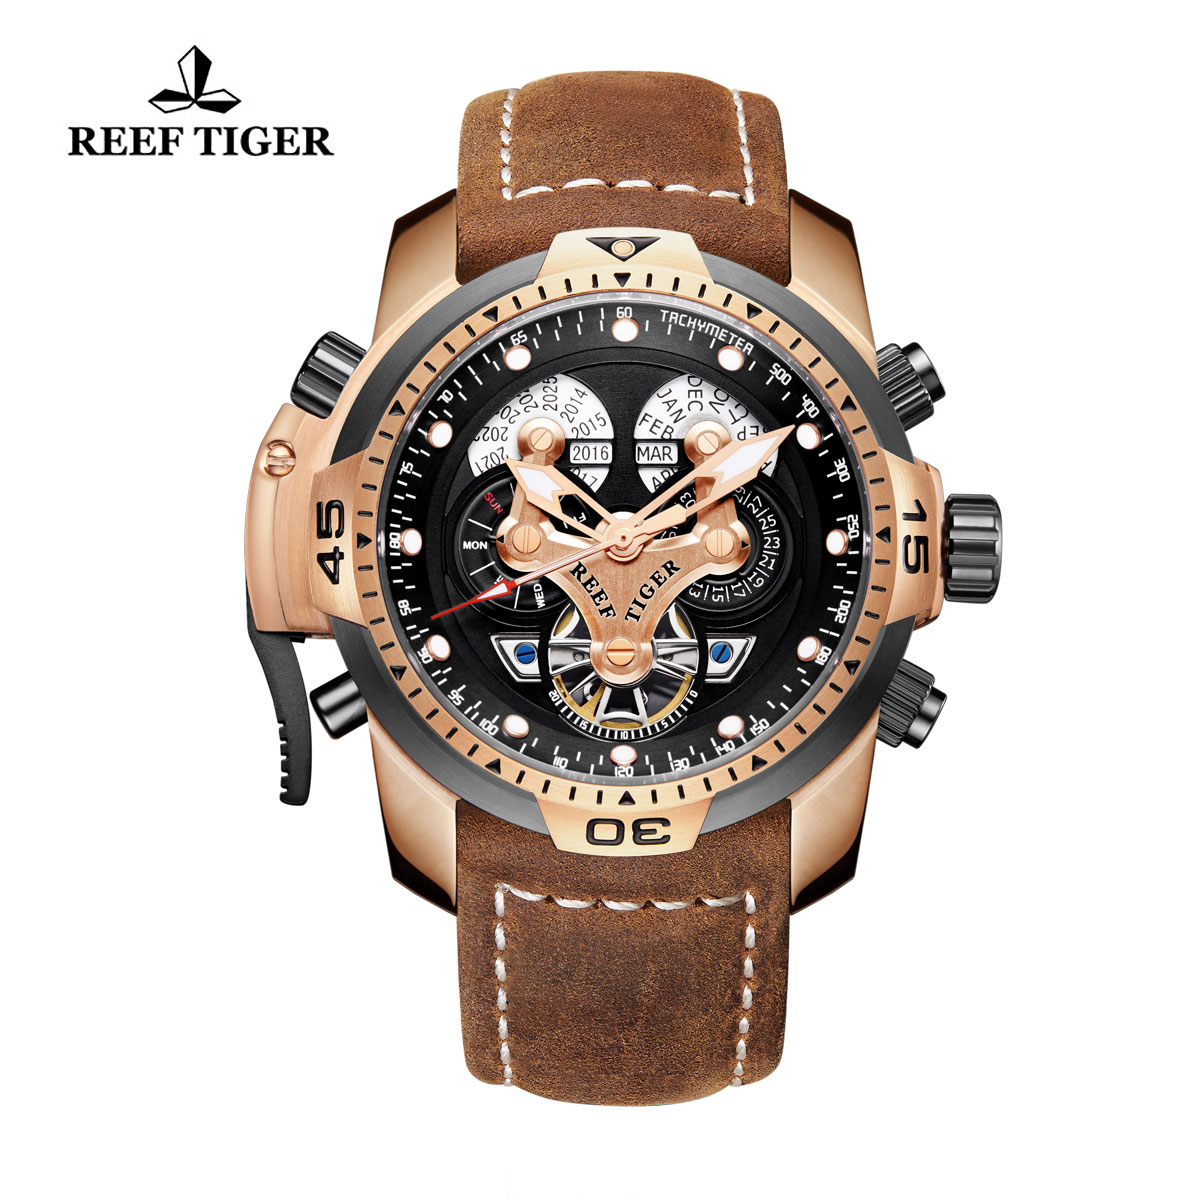 Reef Tiger Concept Sport Watches Automatic Watch Rose Gold Case Brown Leather RGA3503-PBSG